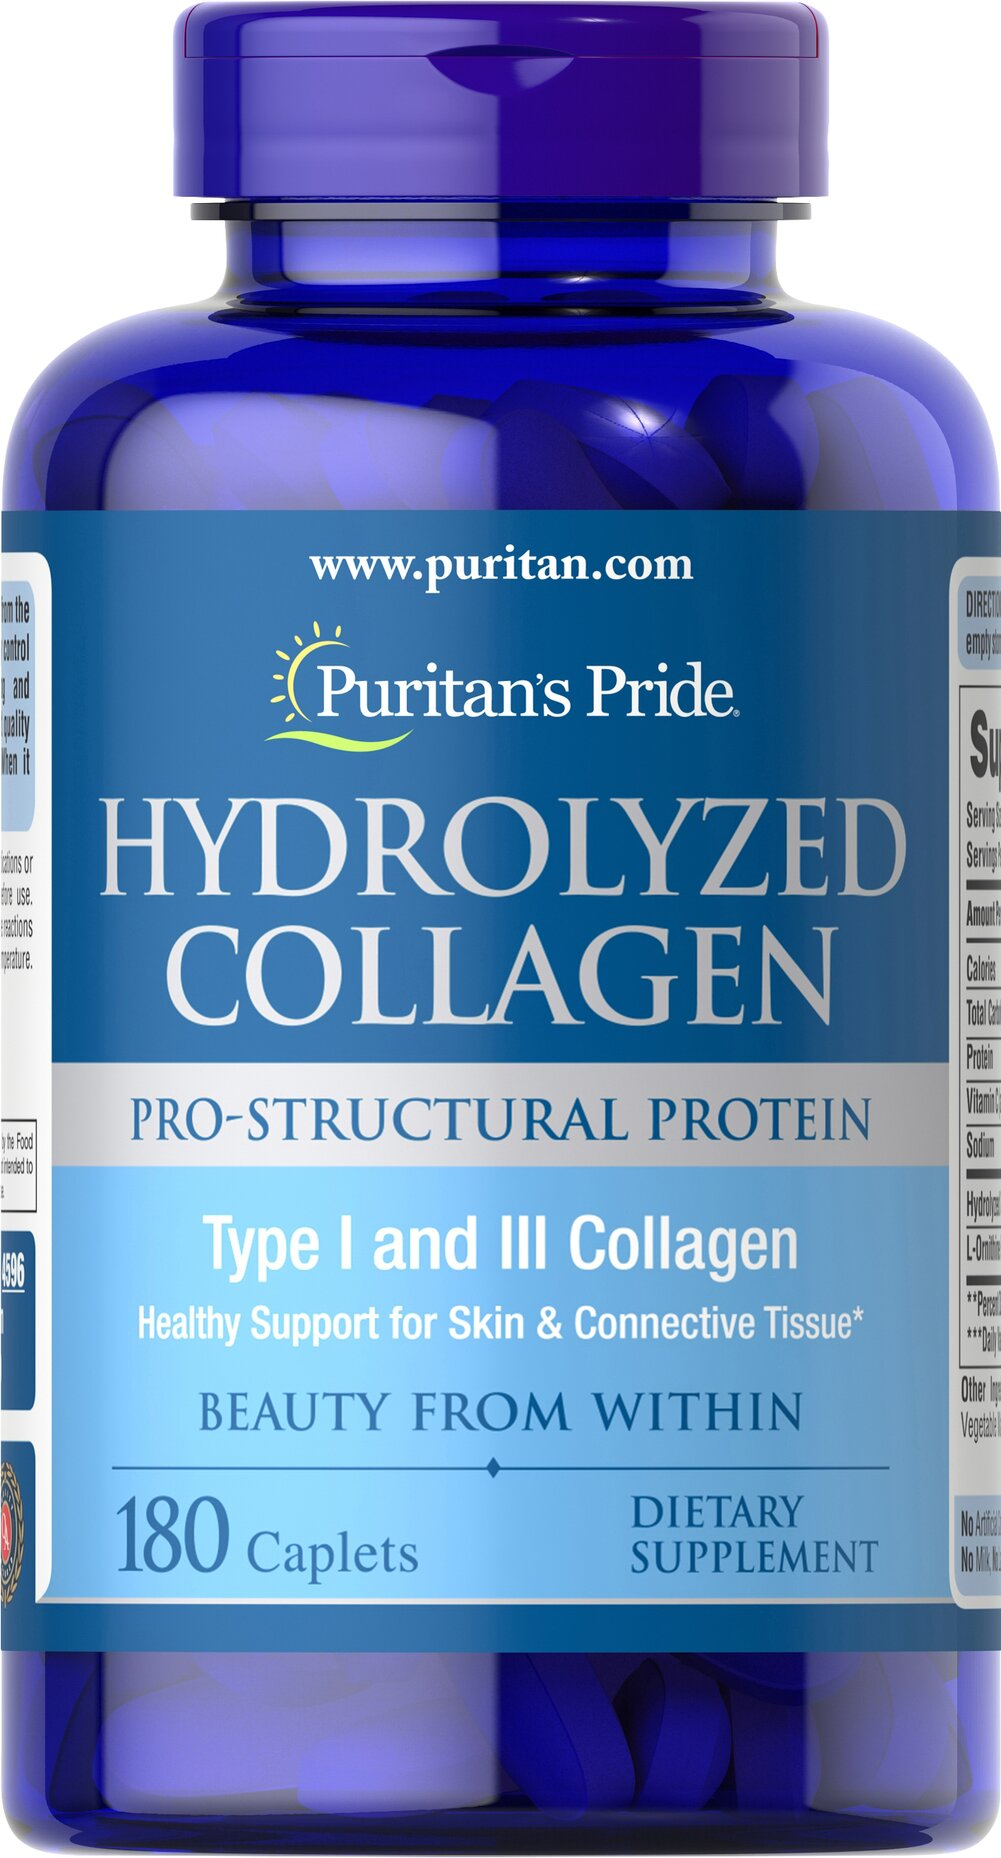 Hydrolyzed Collagen 1000 mg <p>Restore Strength and Flexibility to Hair, Skin and Nails</p><p>This 100% pure collagen protein supplement provides the major building materials for growth and maintenance of nails, hair and skin. Collagen is also an essential component of muscles, tendons, cartilage and teeth.**</p> 180 Tablets 1000 mg $19.99